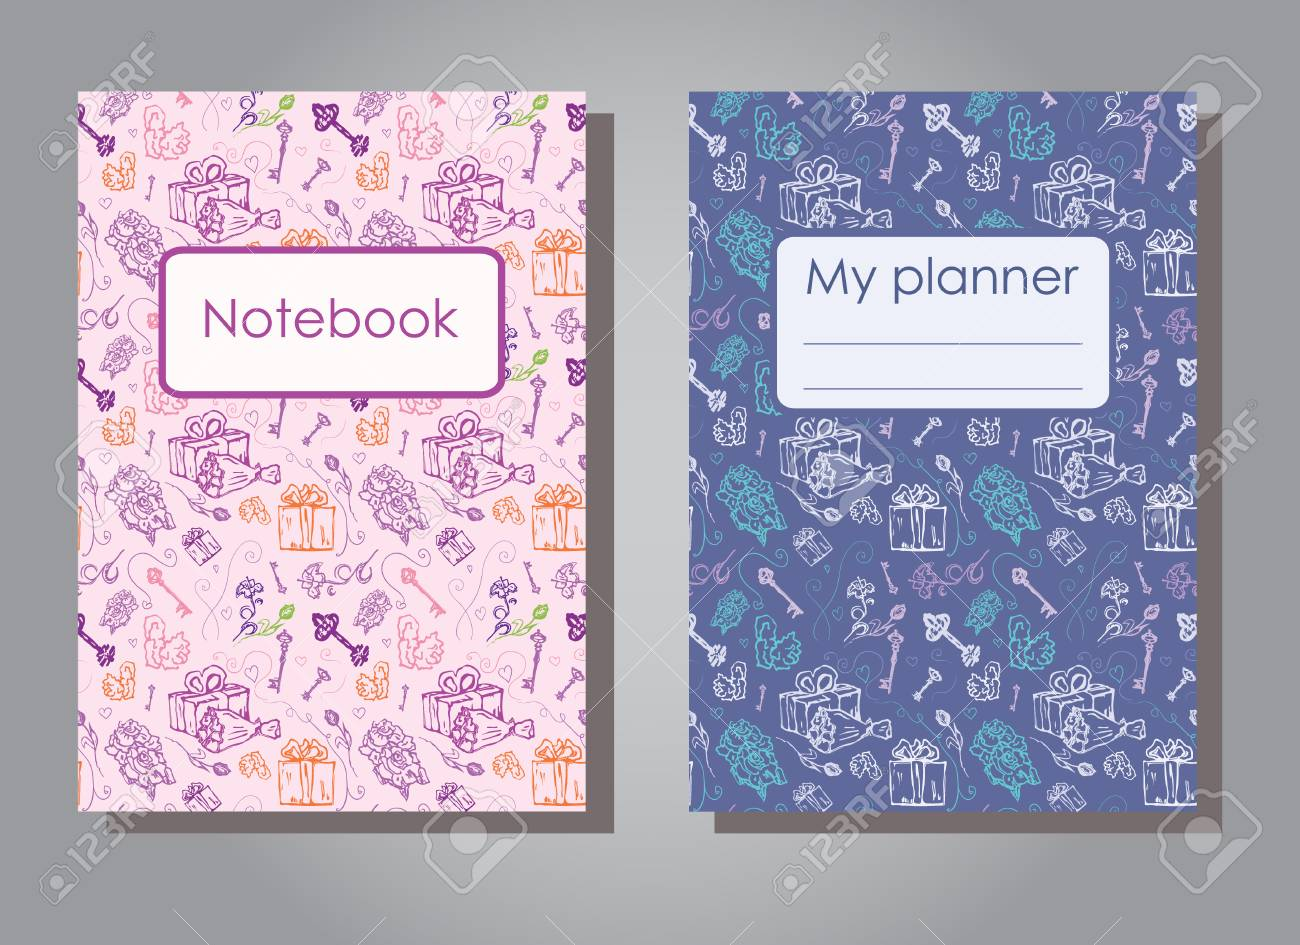 Vector illustration set design template of floral covers for planners and notebooks. Layout dark and light version of books, albums. Hand drawn creative flowers, gift, keys for notepad cover - Size A5 - 104765116